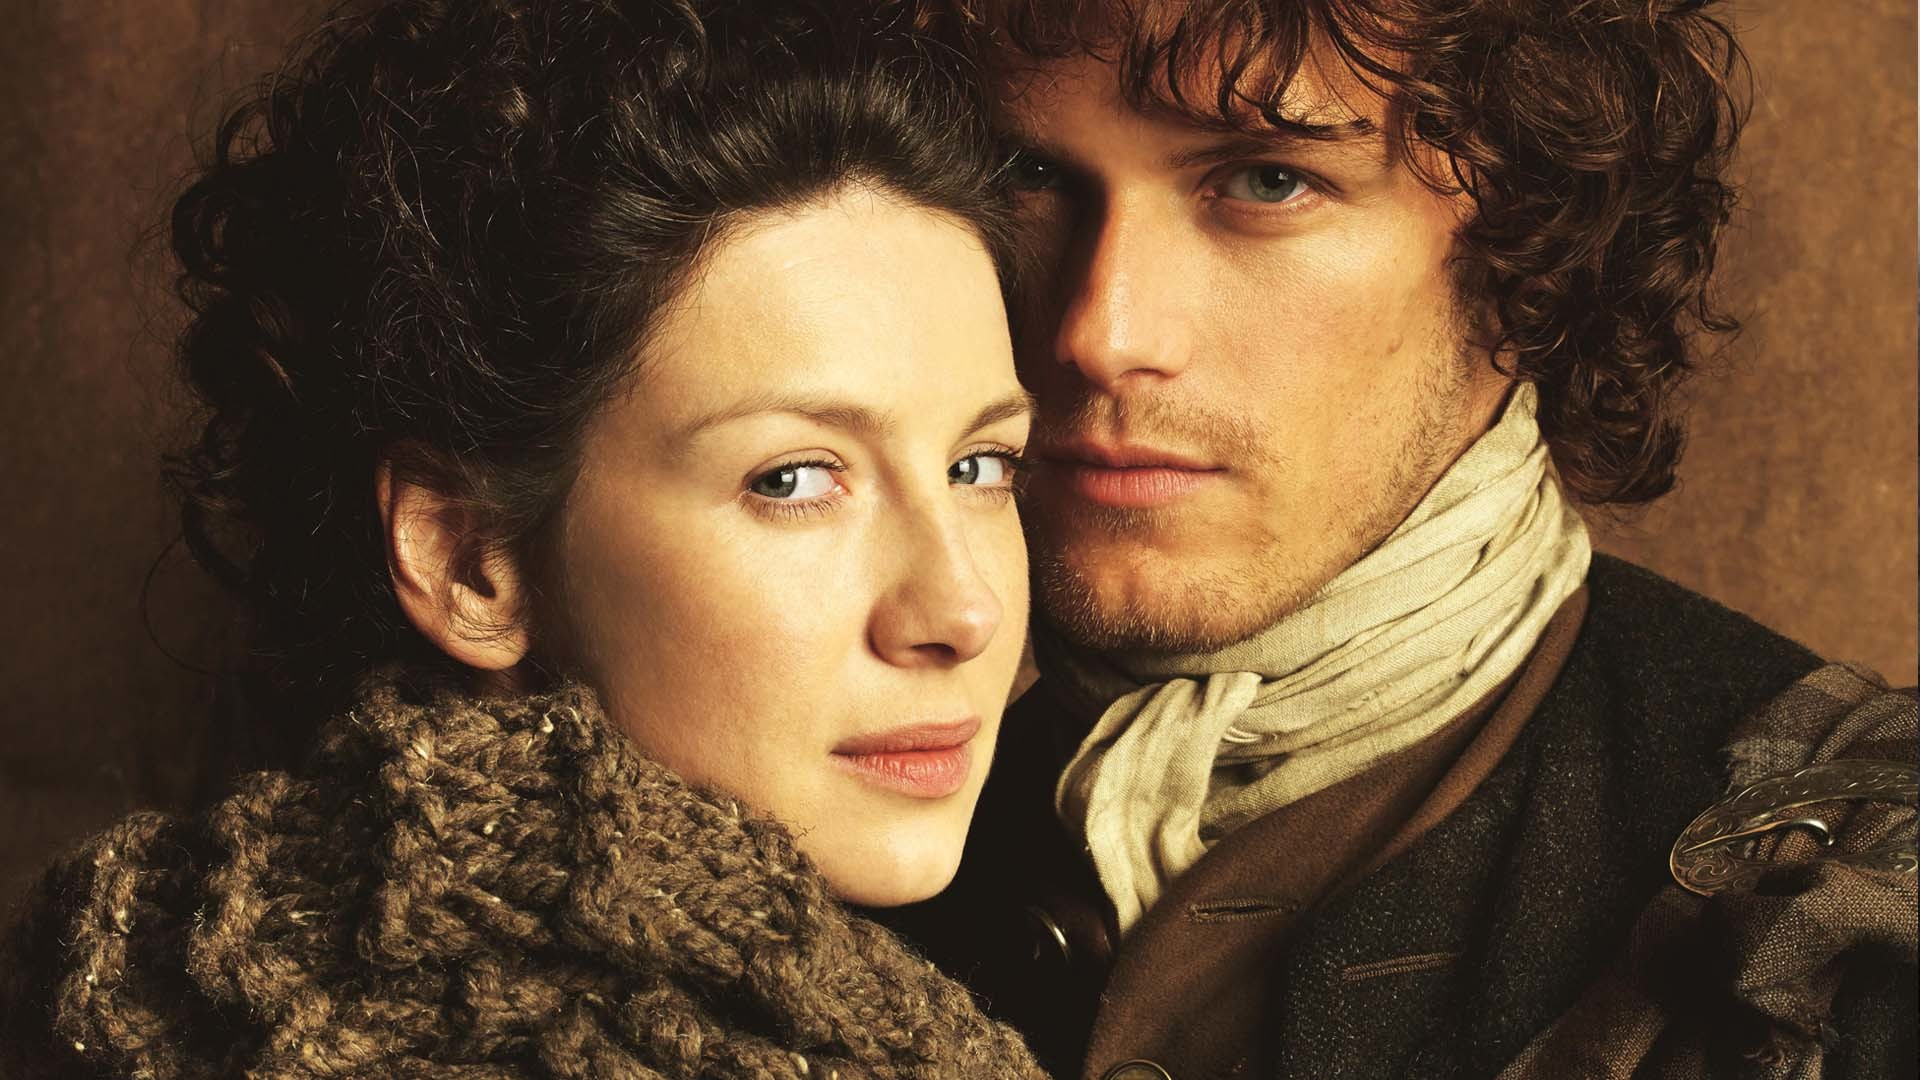 1920x1080 Jamie-and-Claire-outlander-2014-tv-series-38535192-1920-1080.jpg